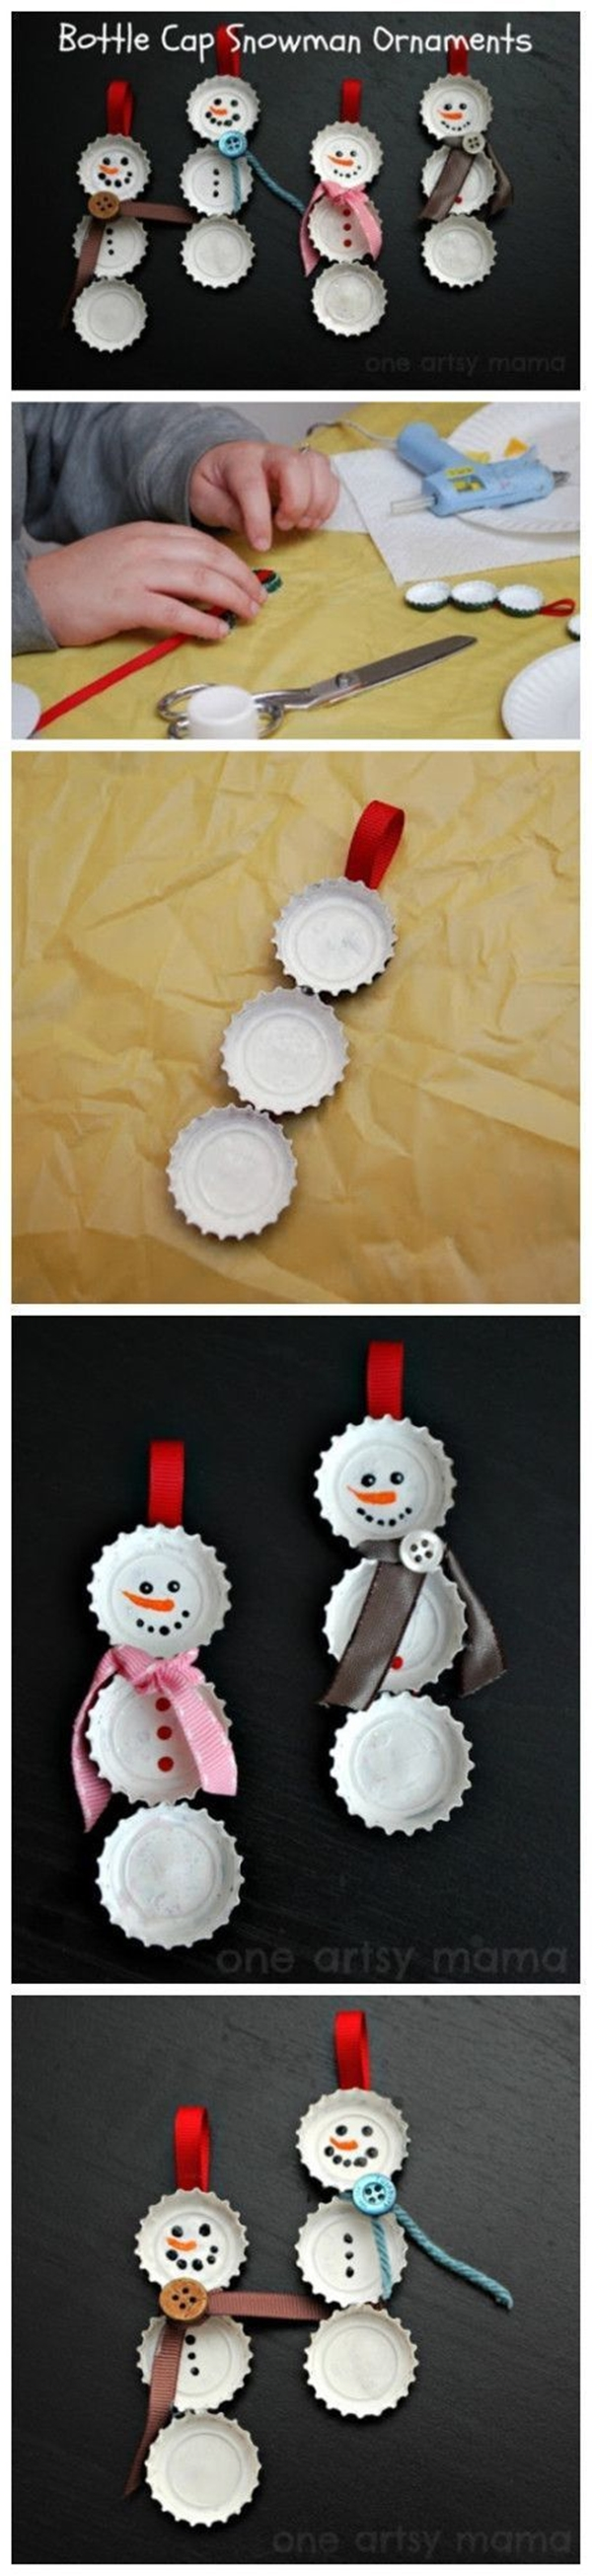 40 Brilliant DIY Snowman Crafts Ideas for Amazing Winter